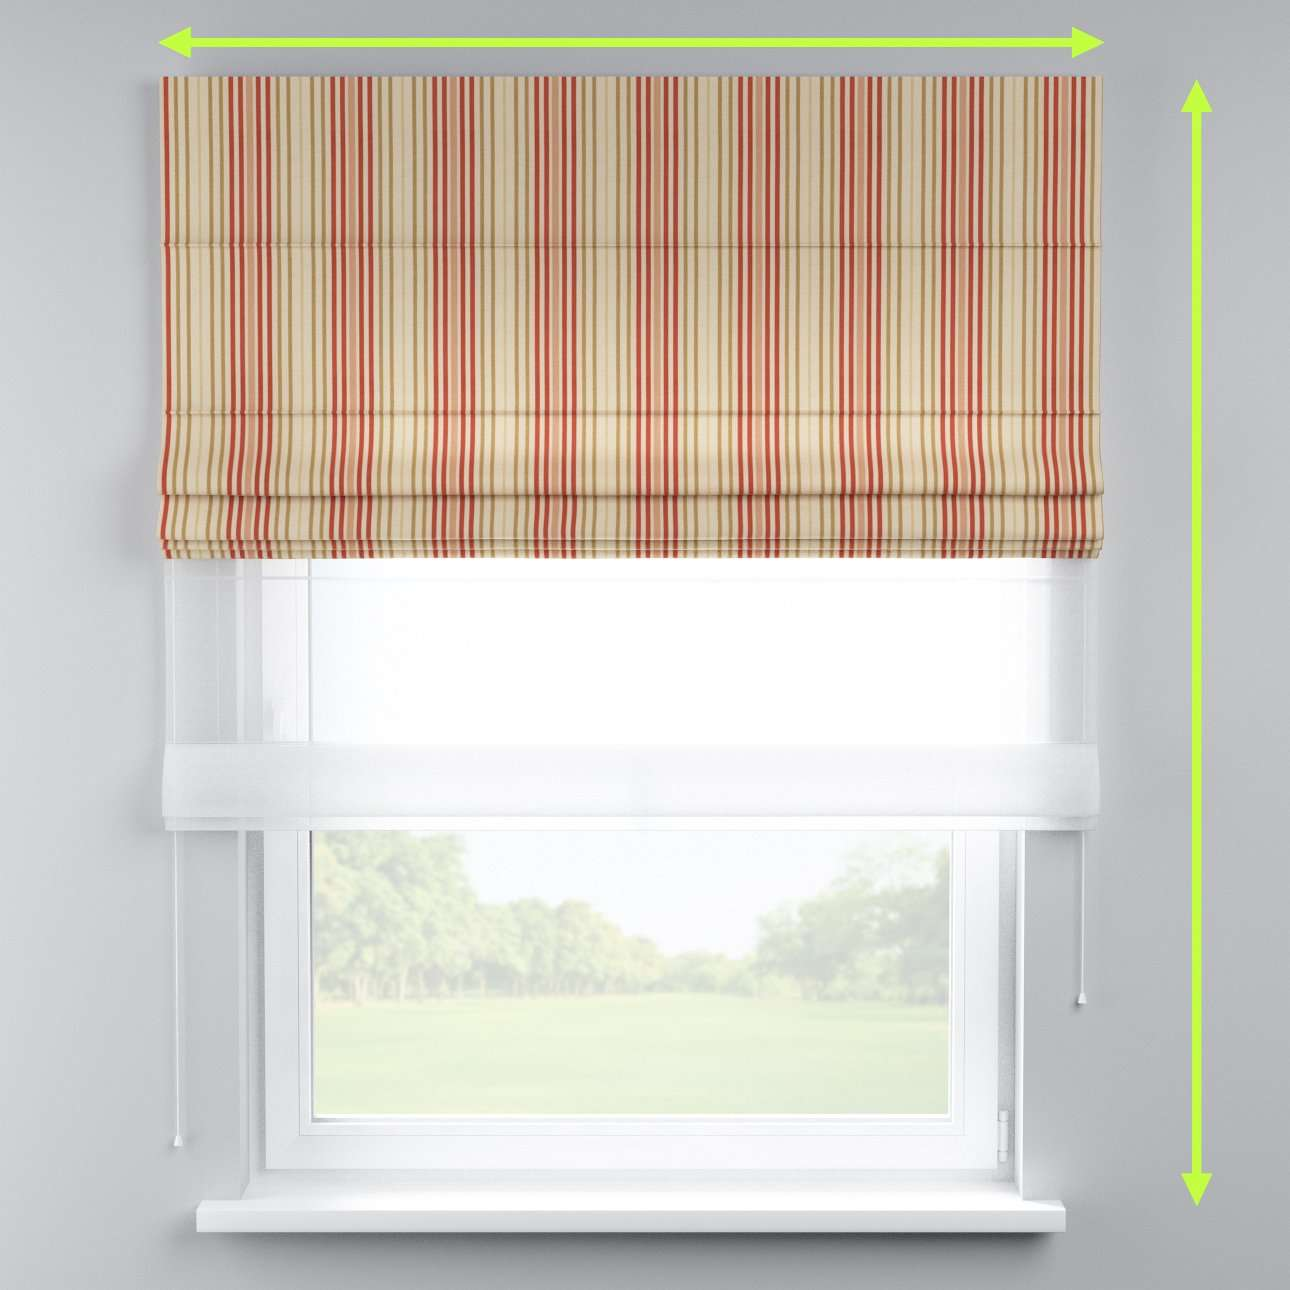 Voile and fabric roman blind (DUO II) in collection Londres, fabric: 122-05